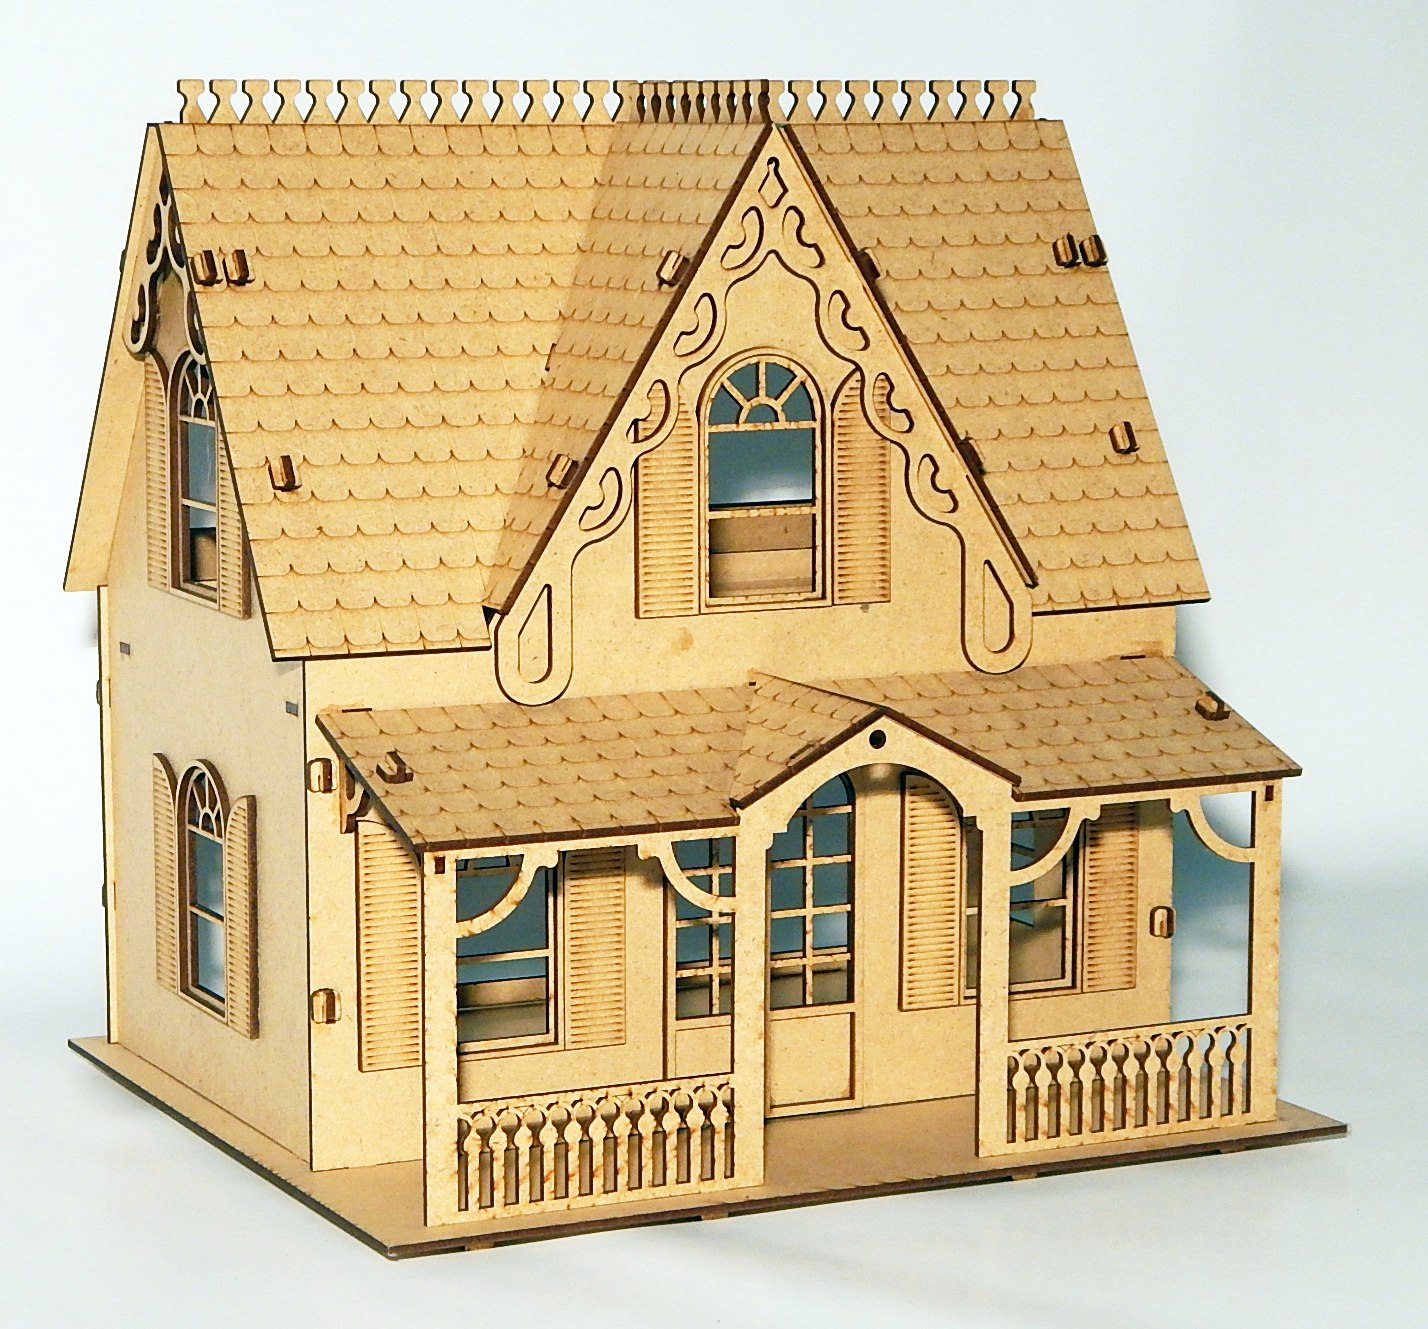 House Laser Cut Free Vector